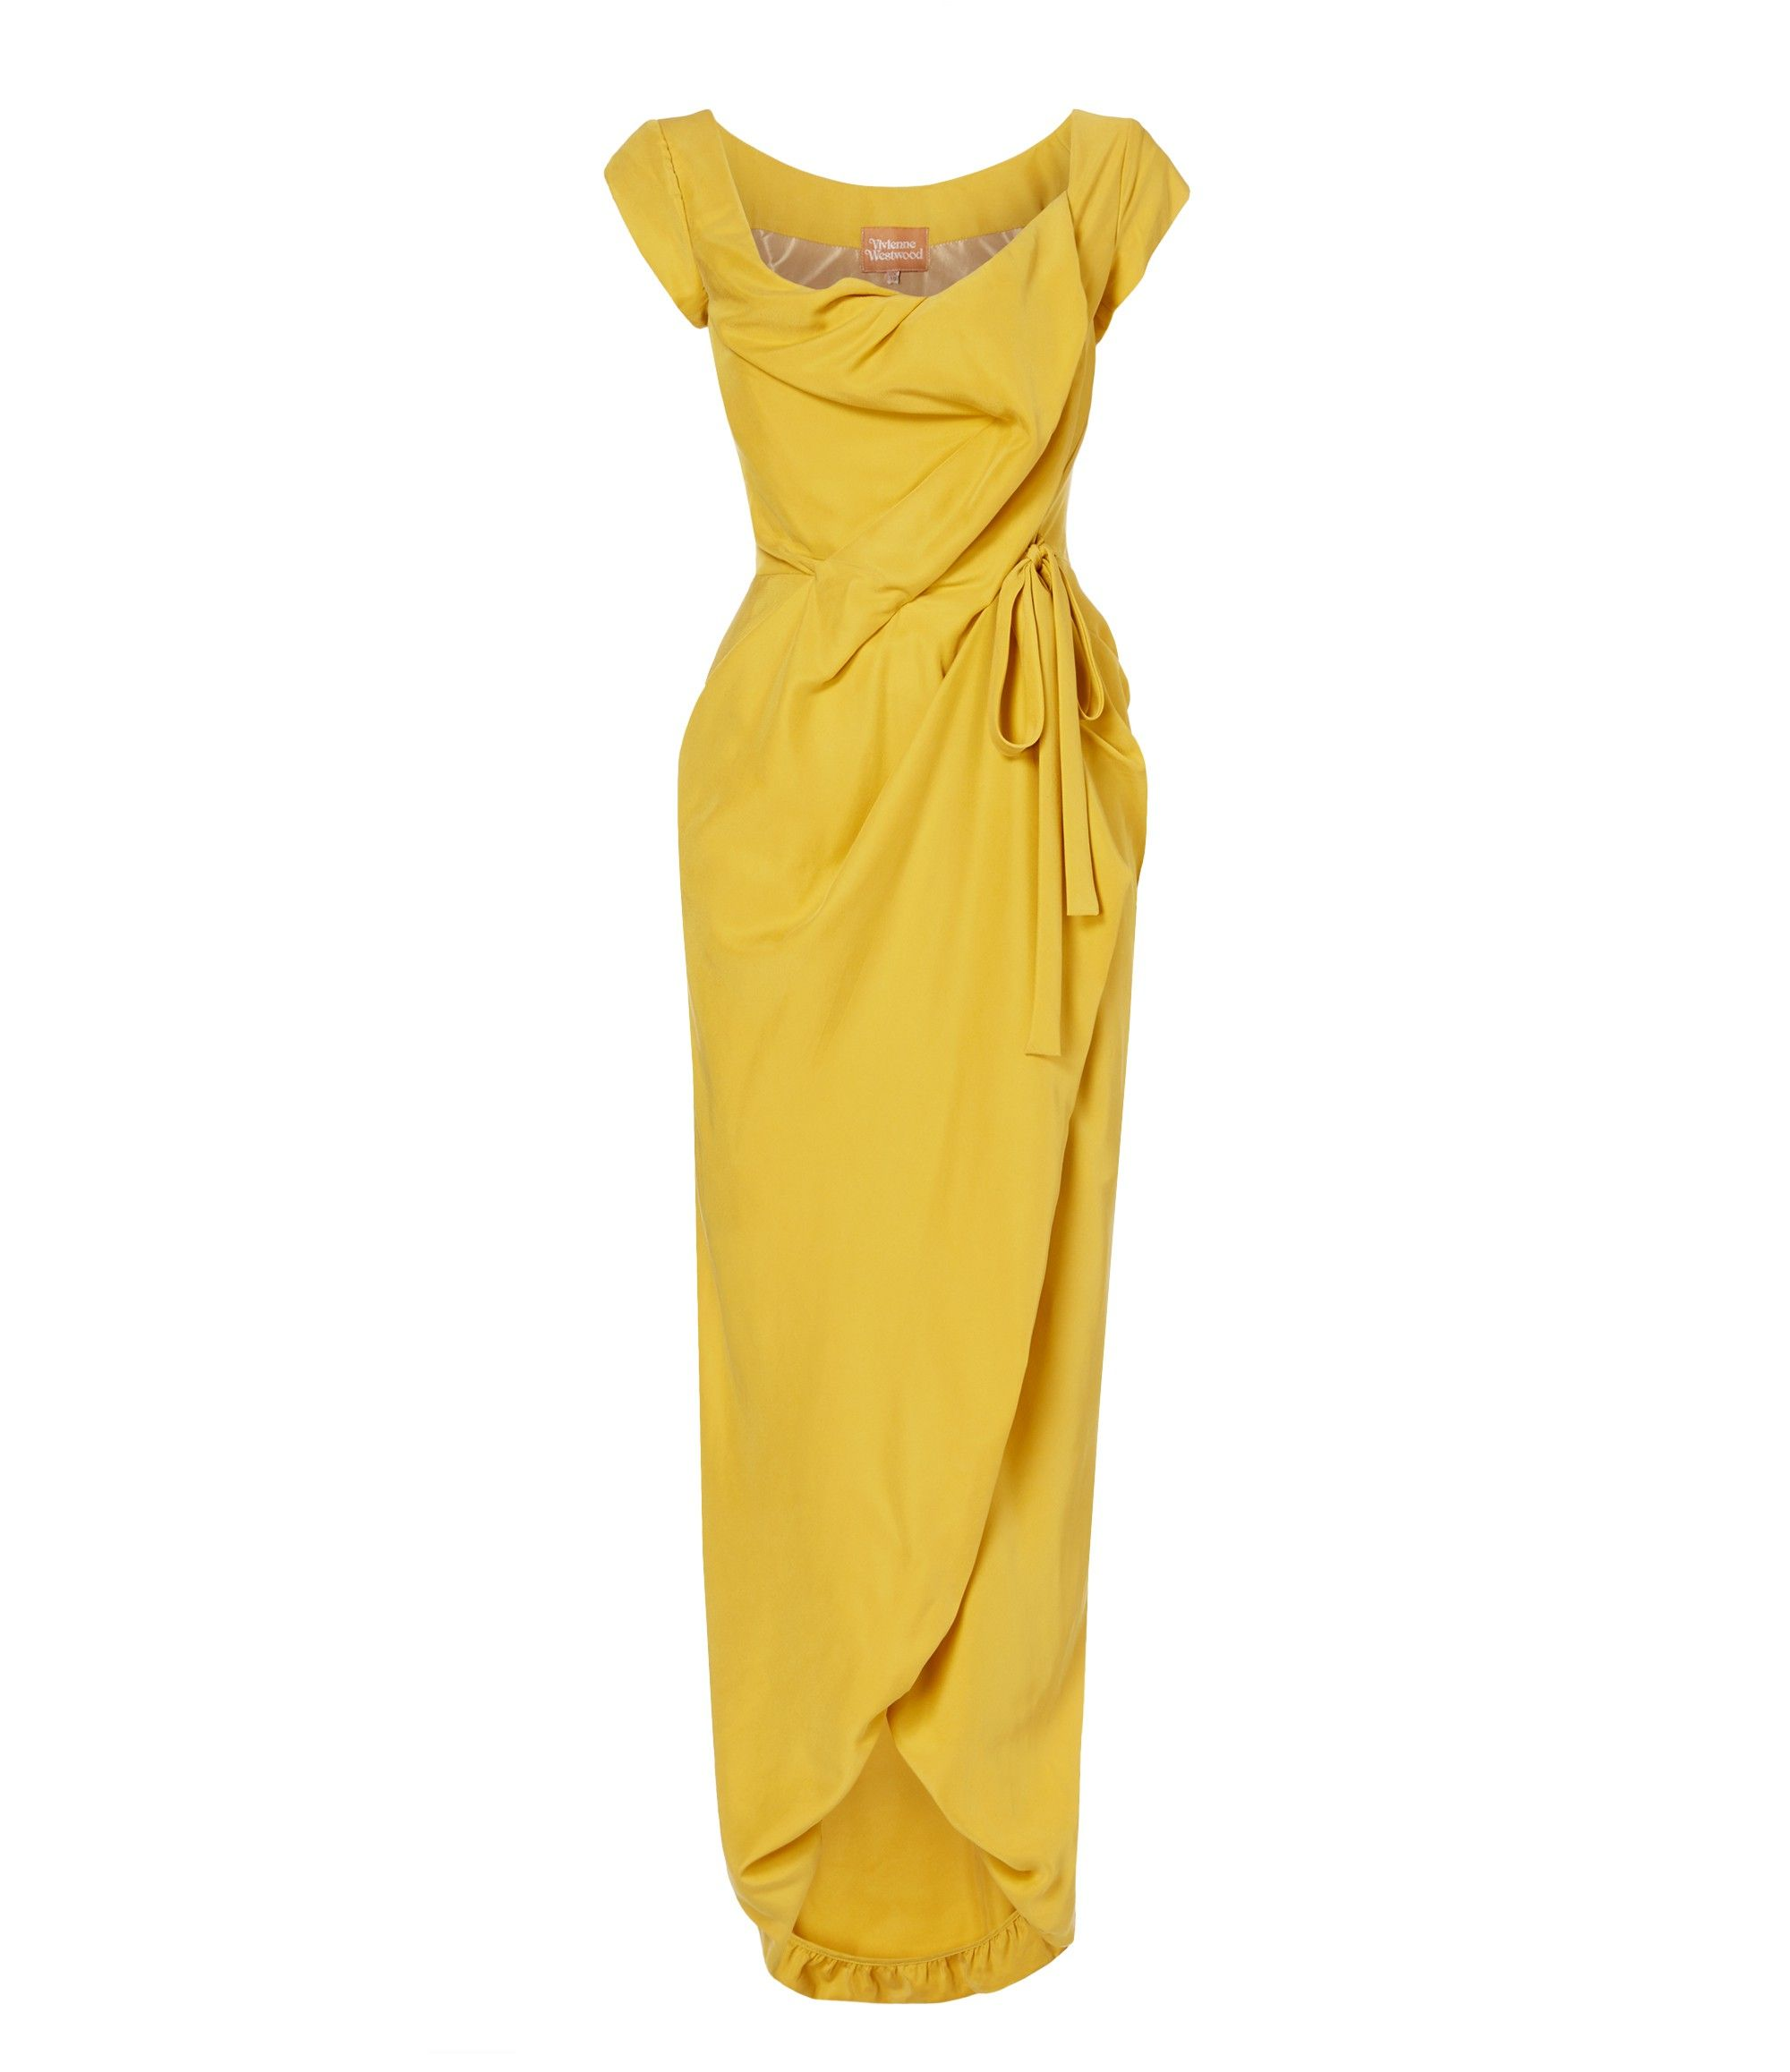 Vivienne Westwood Yellow Long Dora Dress Viviennewestwood Cloth